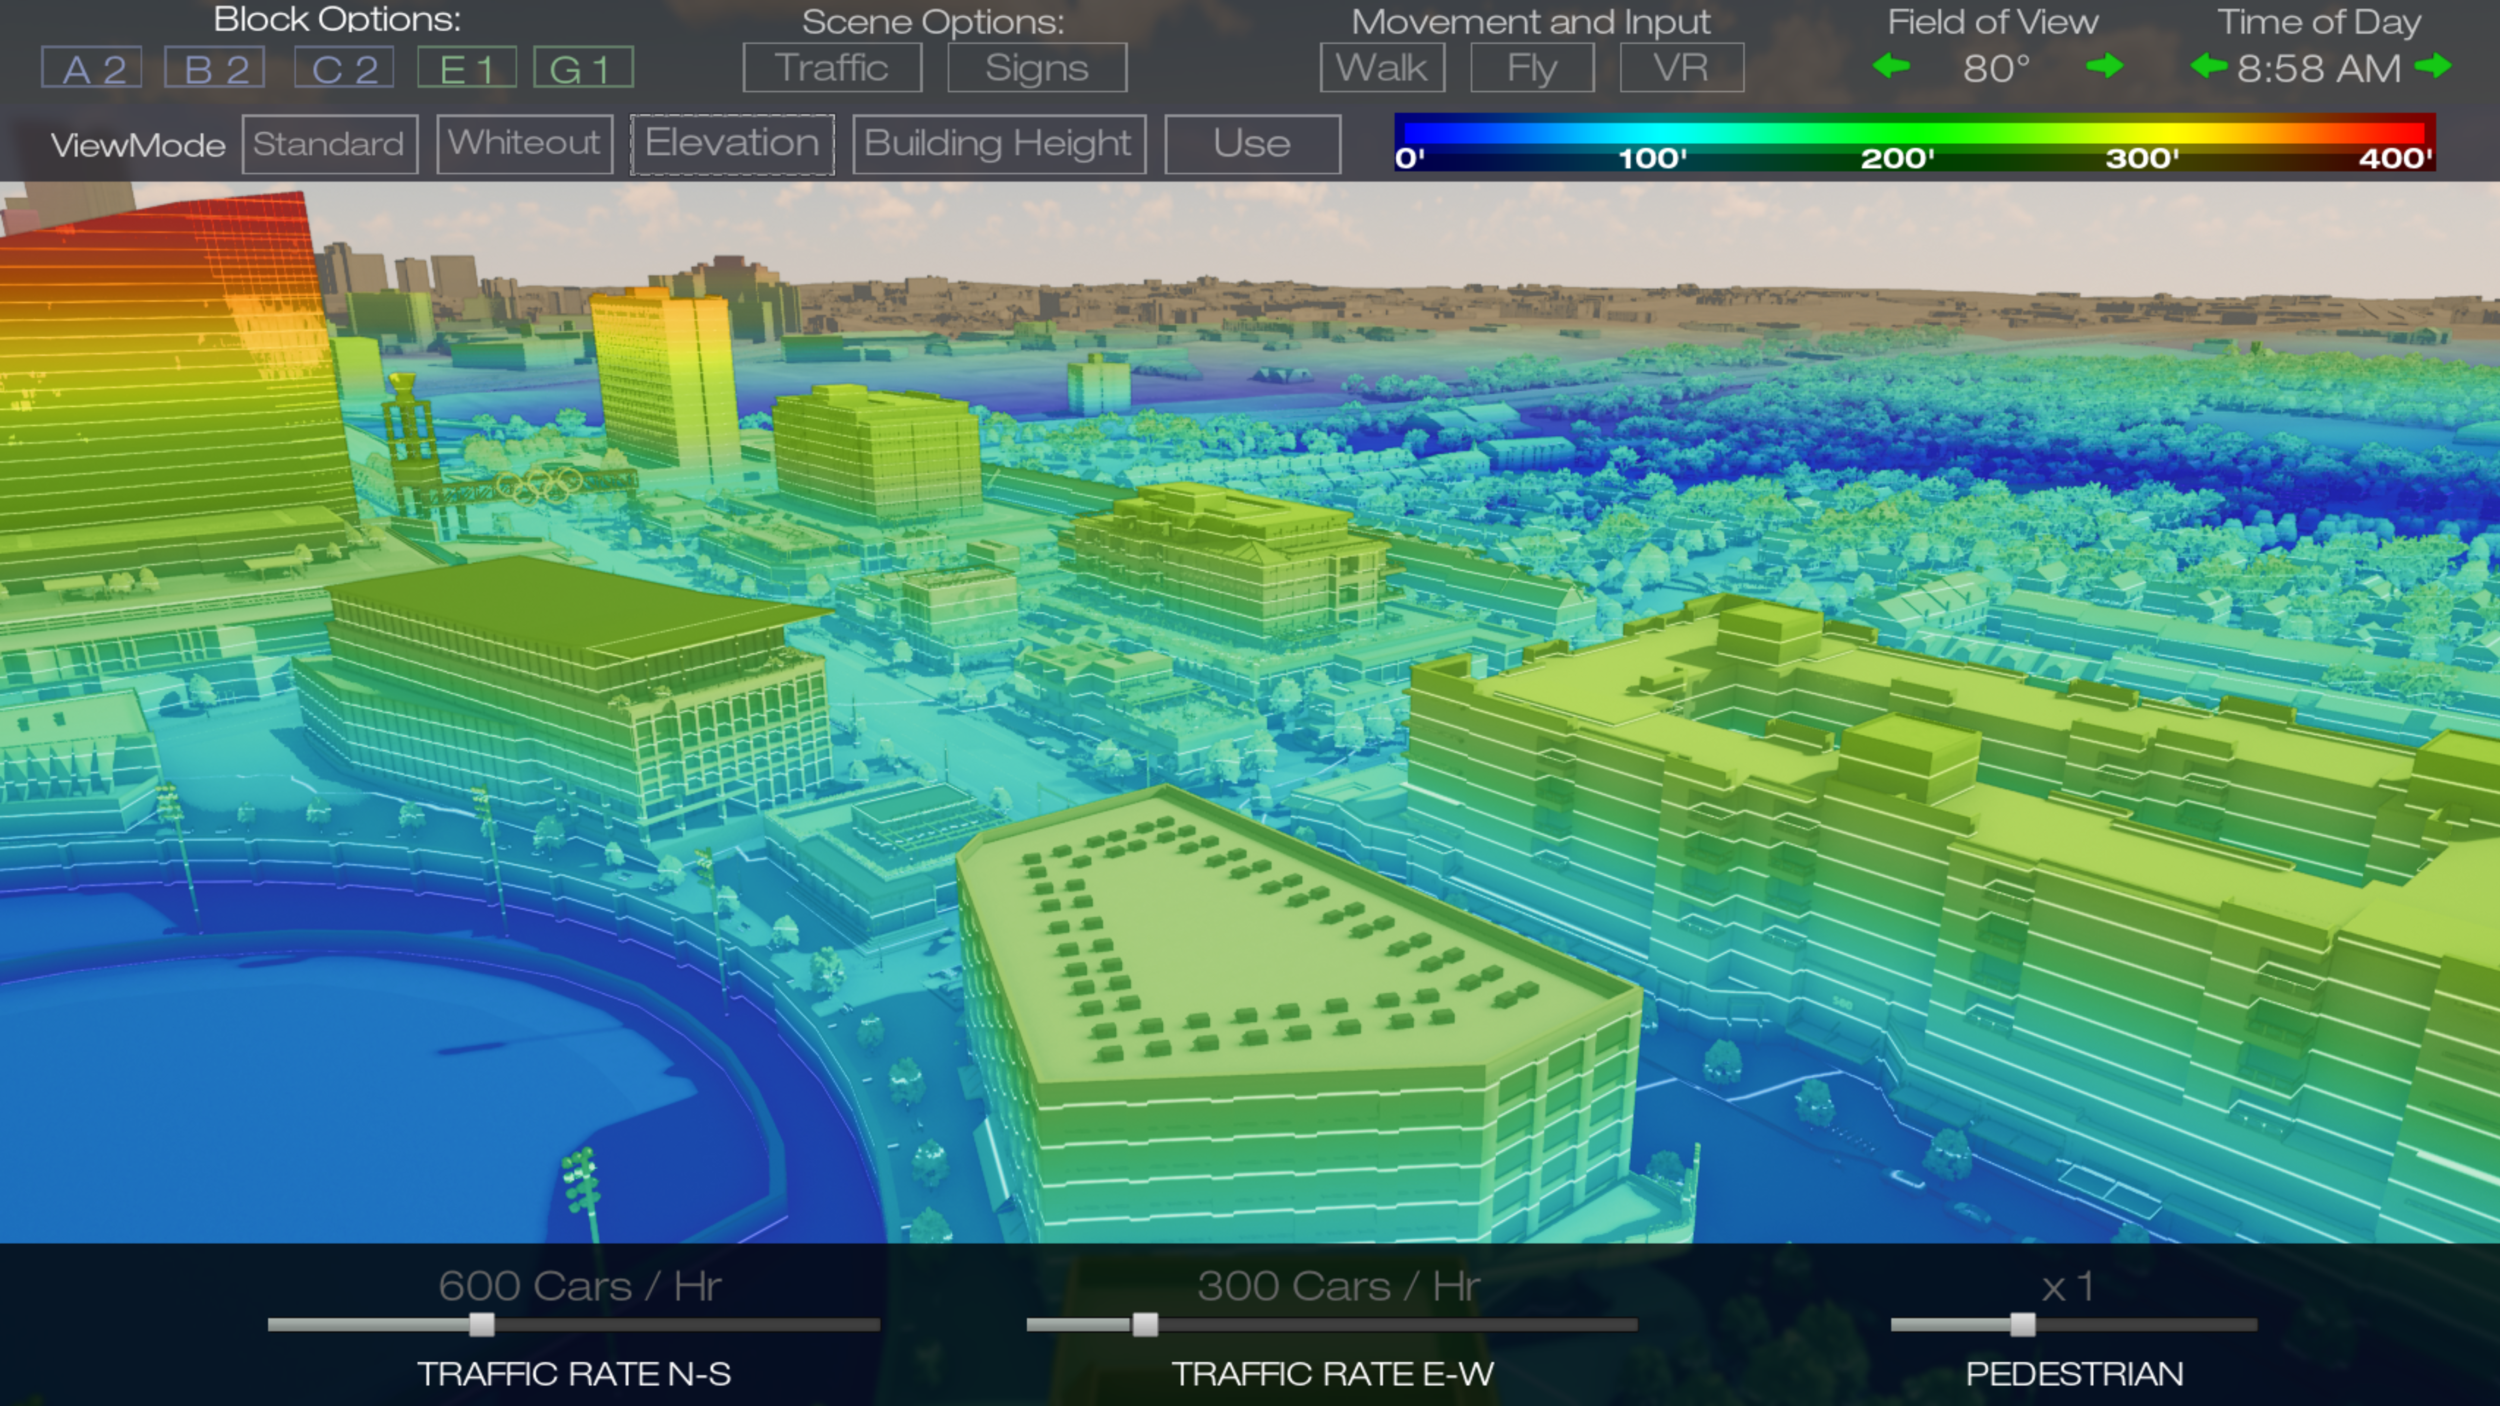 Real-Time Elevation Analysis